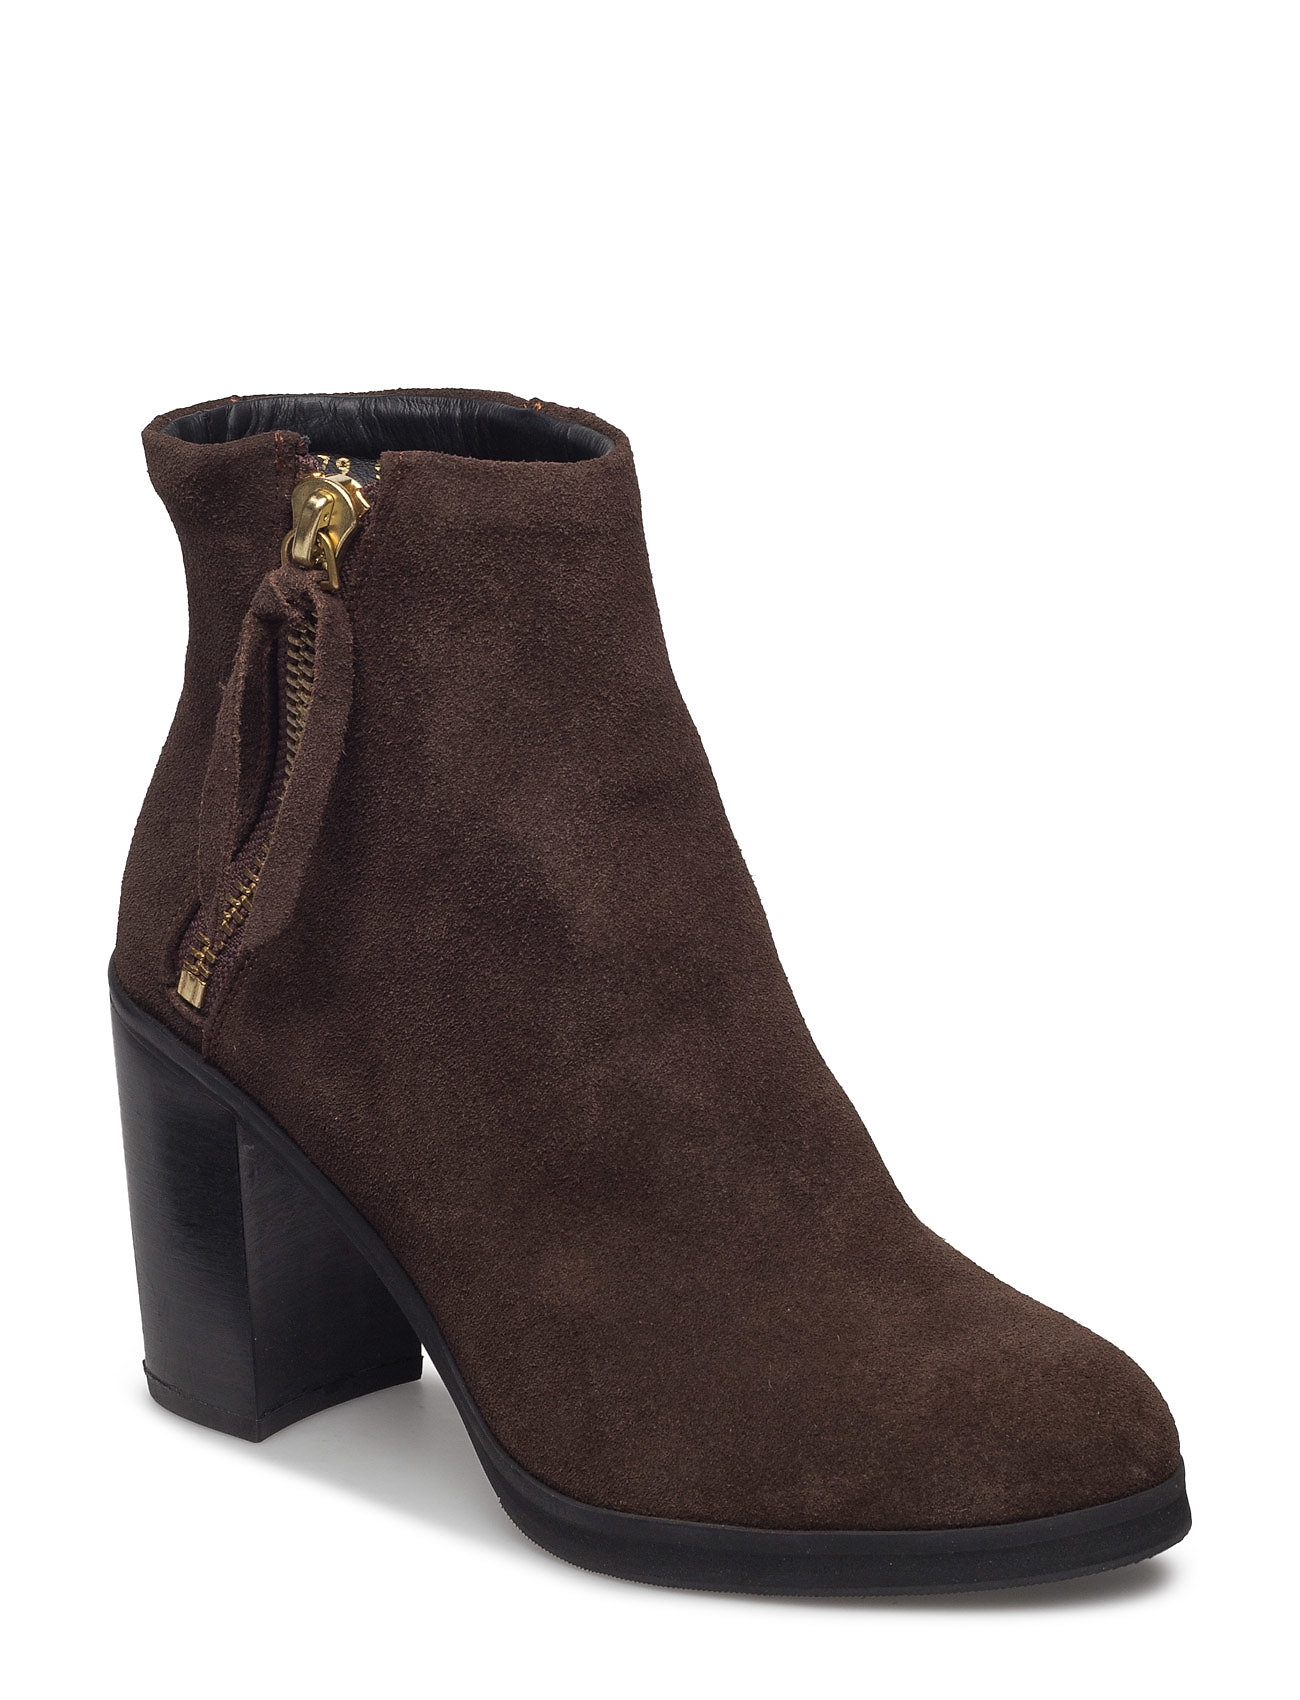 Bridge Zip Boot Suede Royal RepubliQ Støvler til Damer i Brun